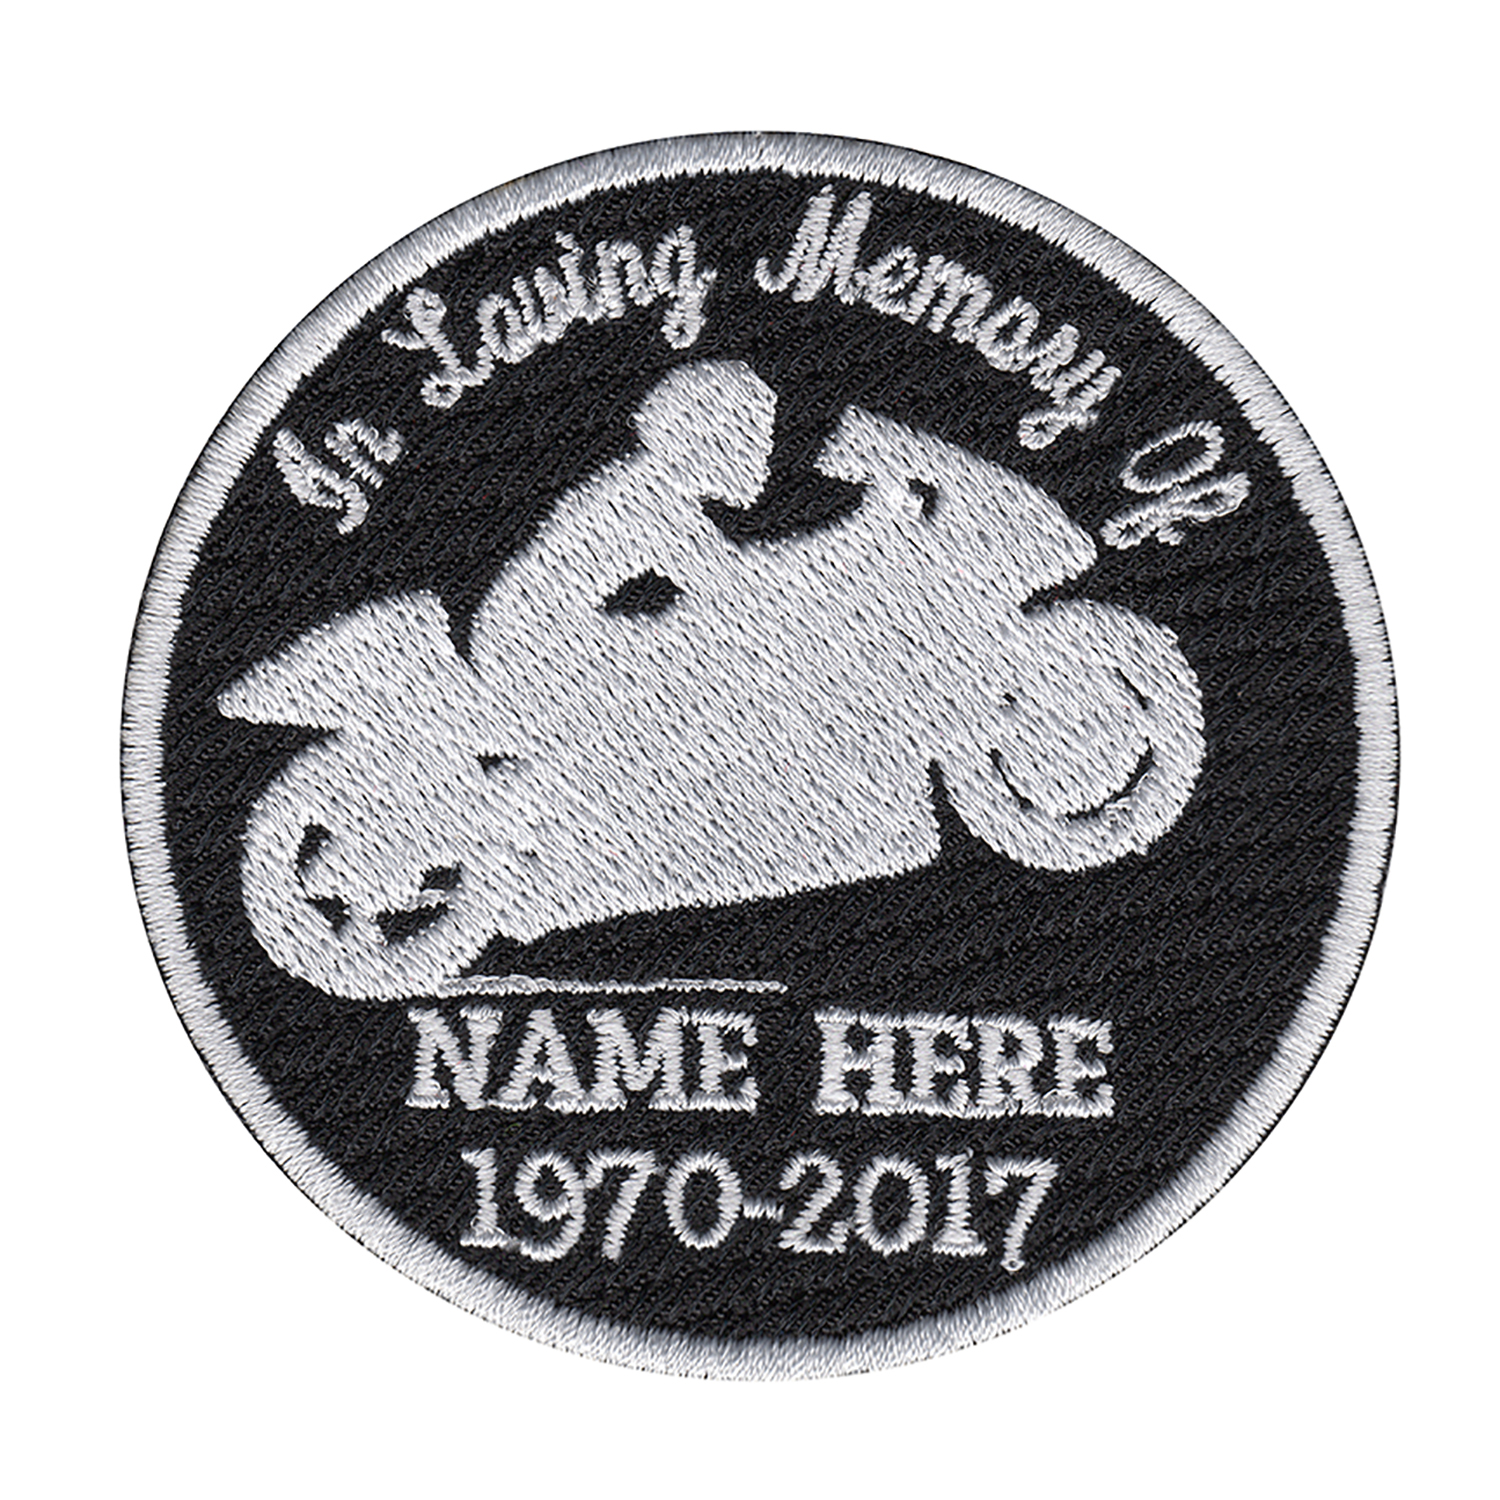 $7.50 · Loving Memory Custom 3 Inches Biker Patch  sc 1 st  NC Patches & Custom patches Archives | NC Patches